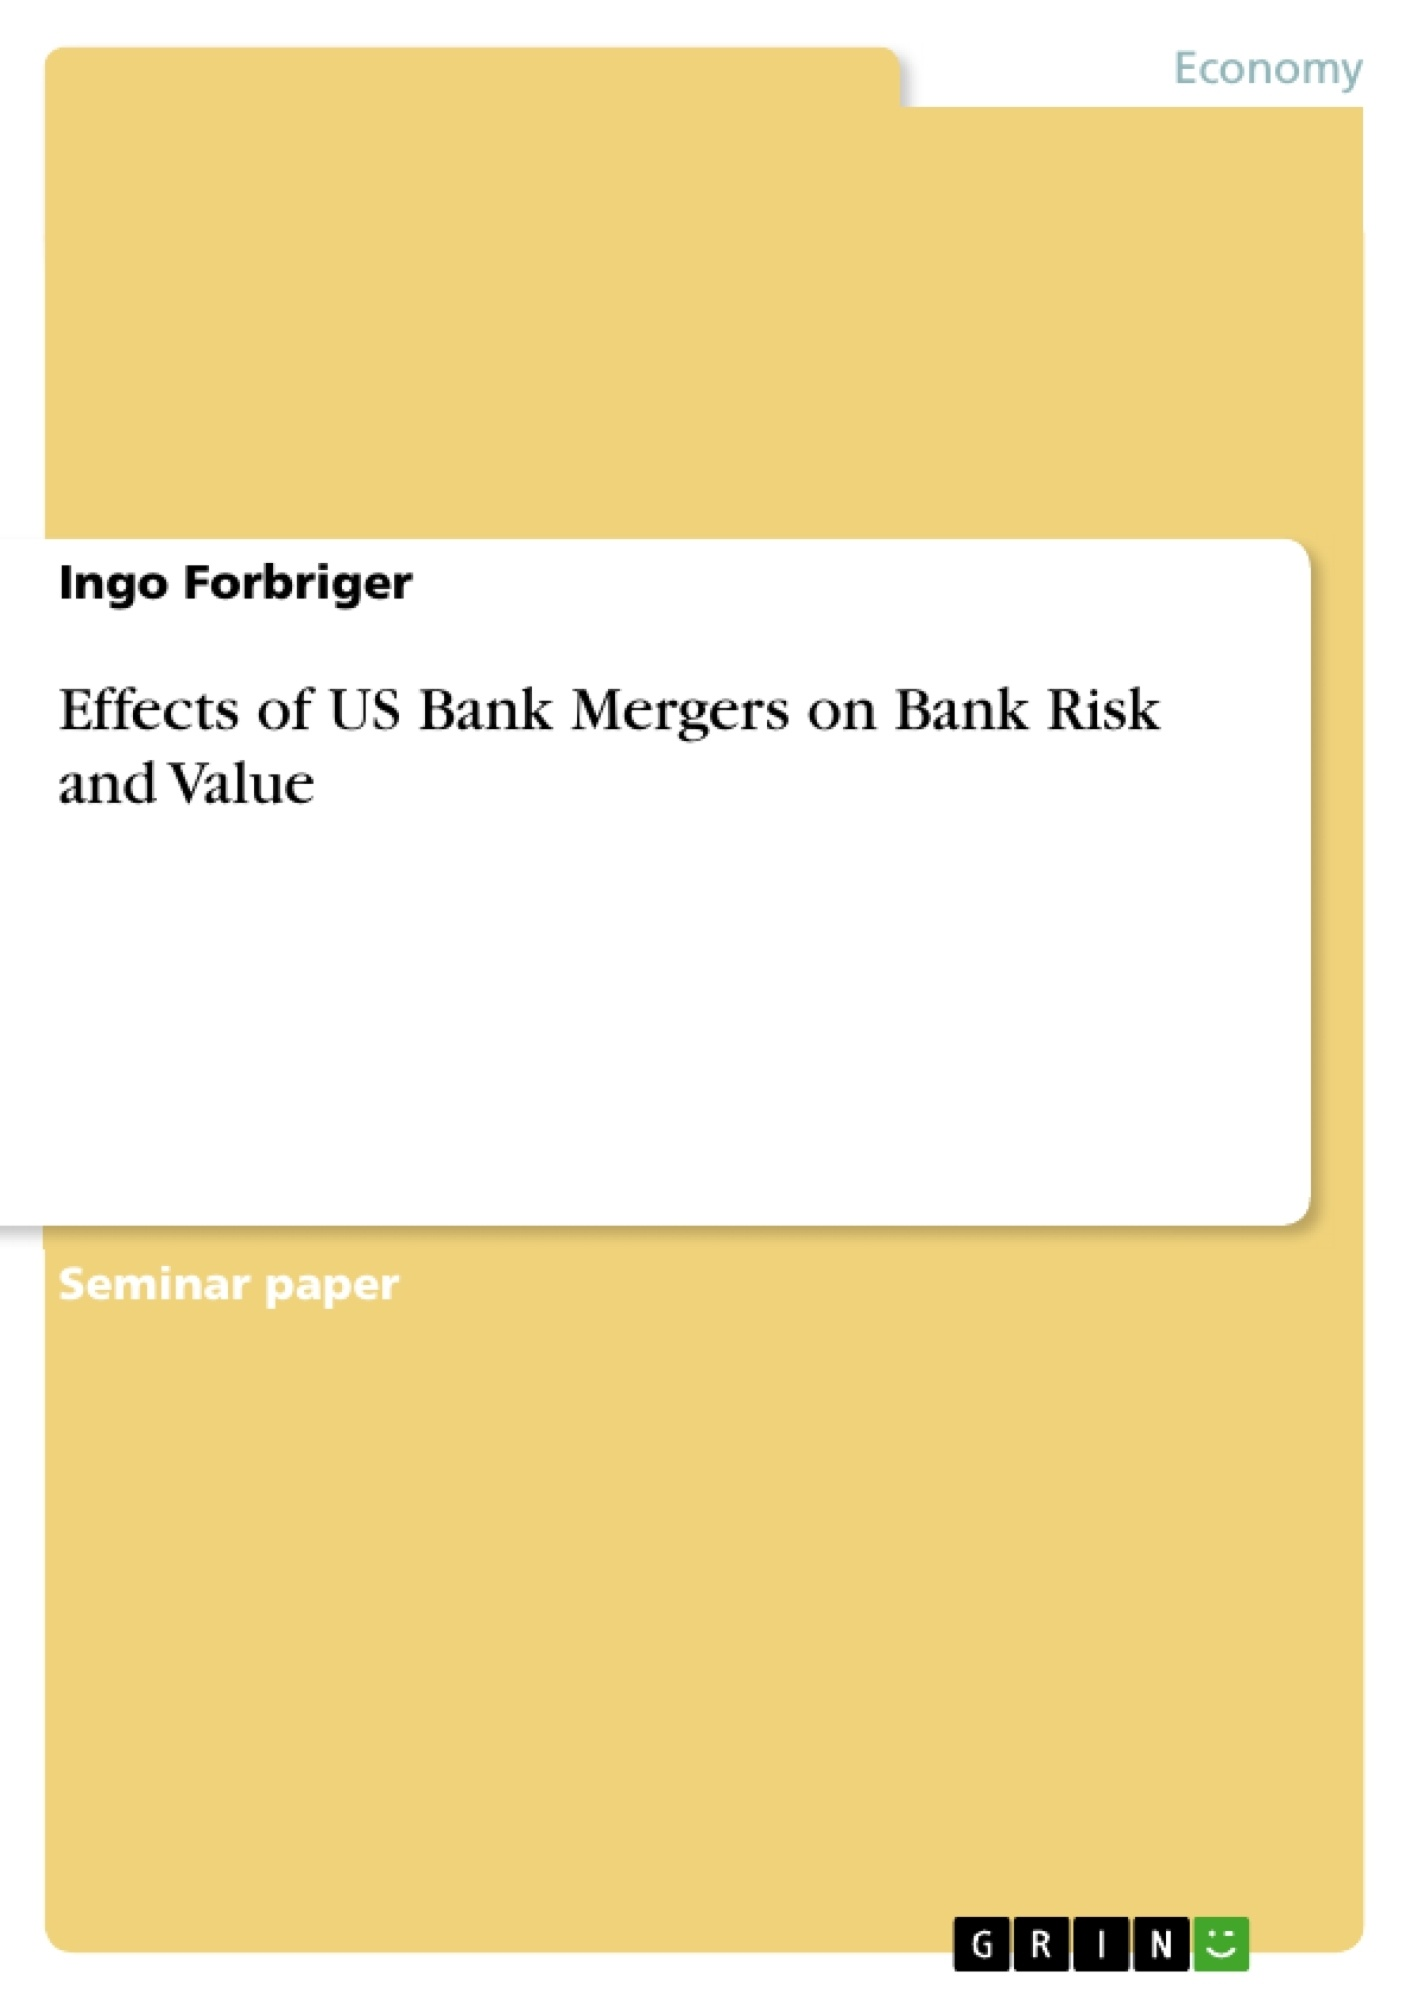 are bank mergers beneficial essay This paper takes a look at effects of bank mergers in do not necessarily reflect the views of uk essays mergers are not beneficial to the customer if the.